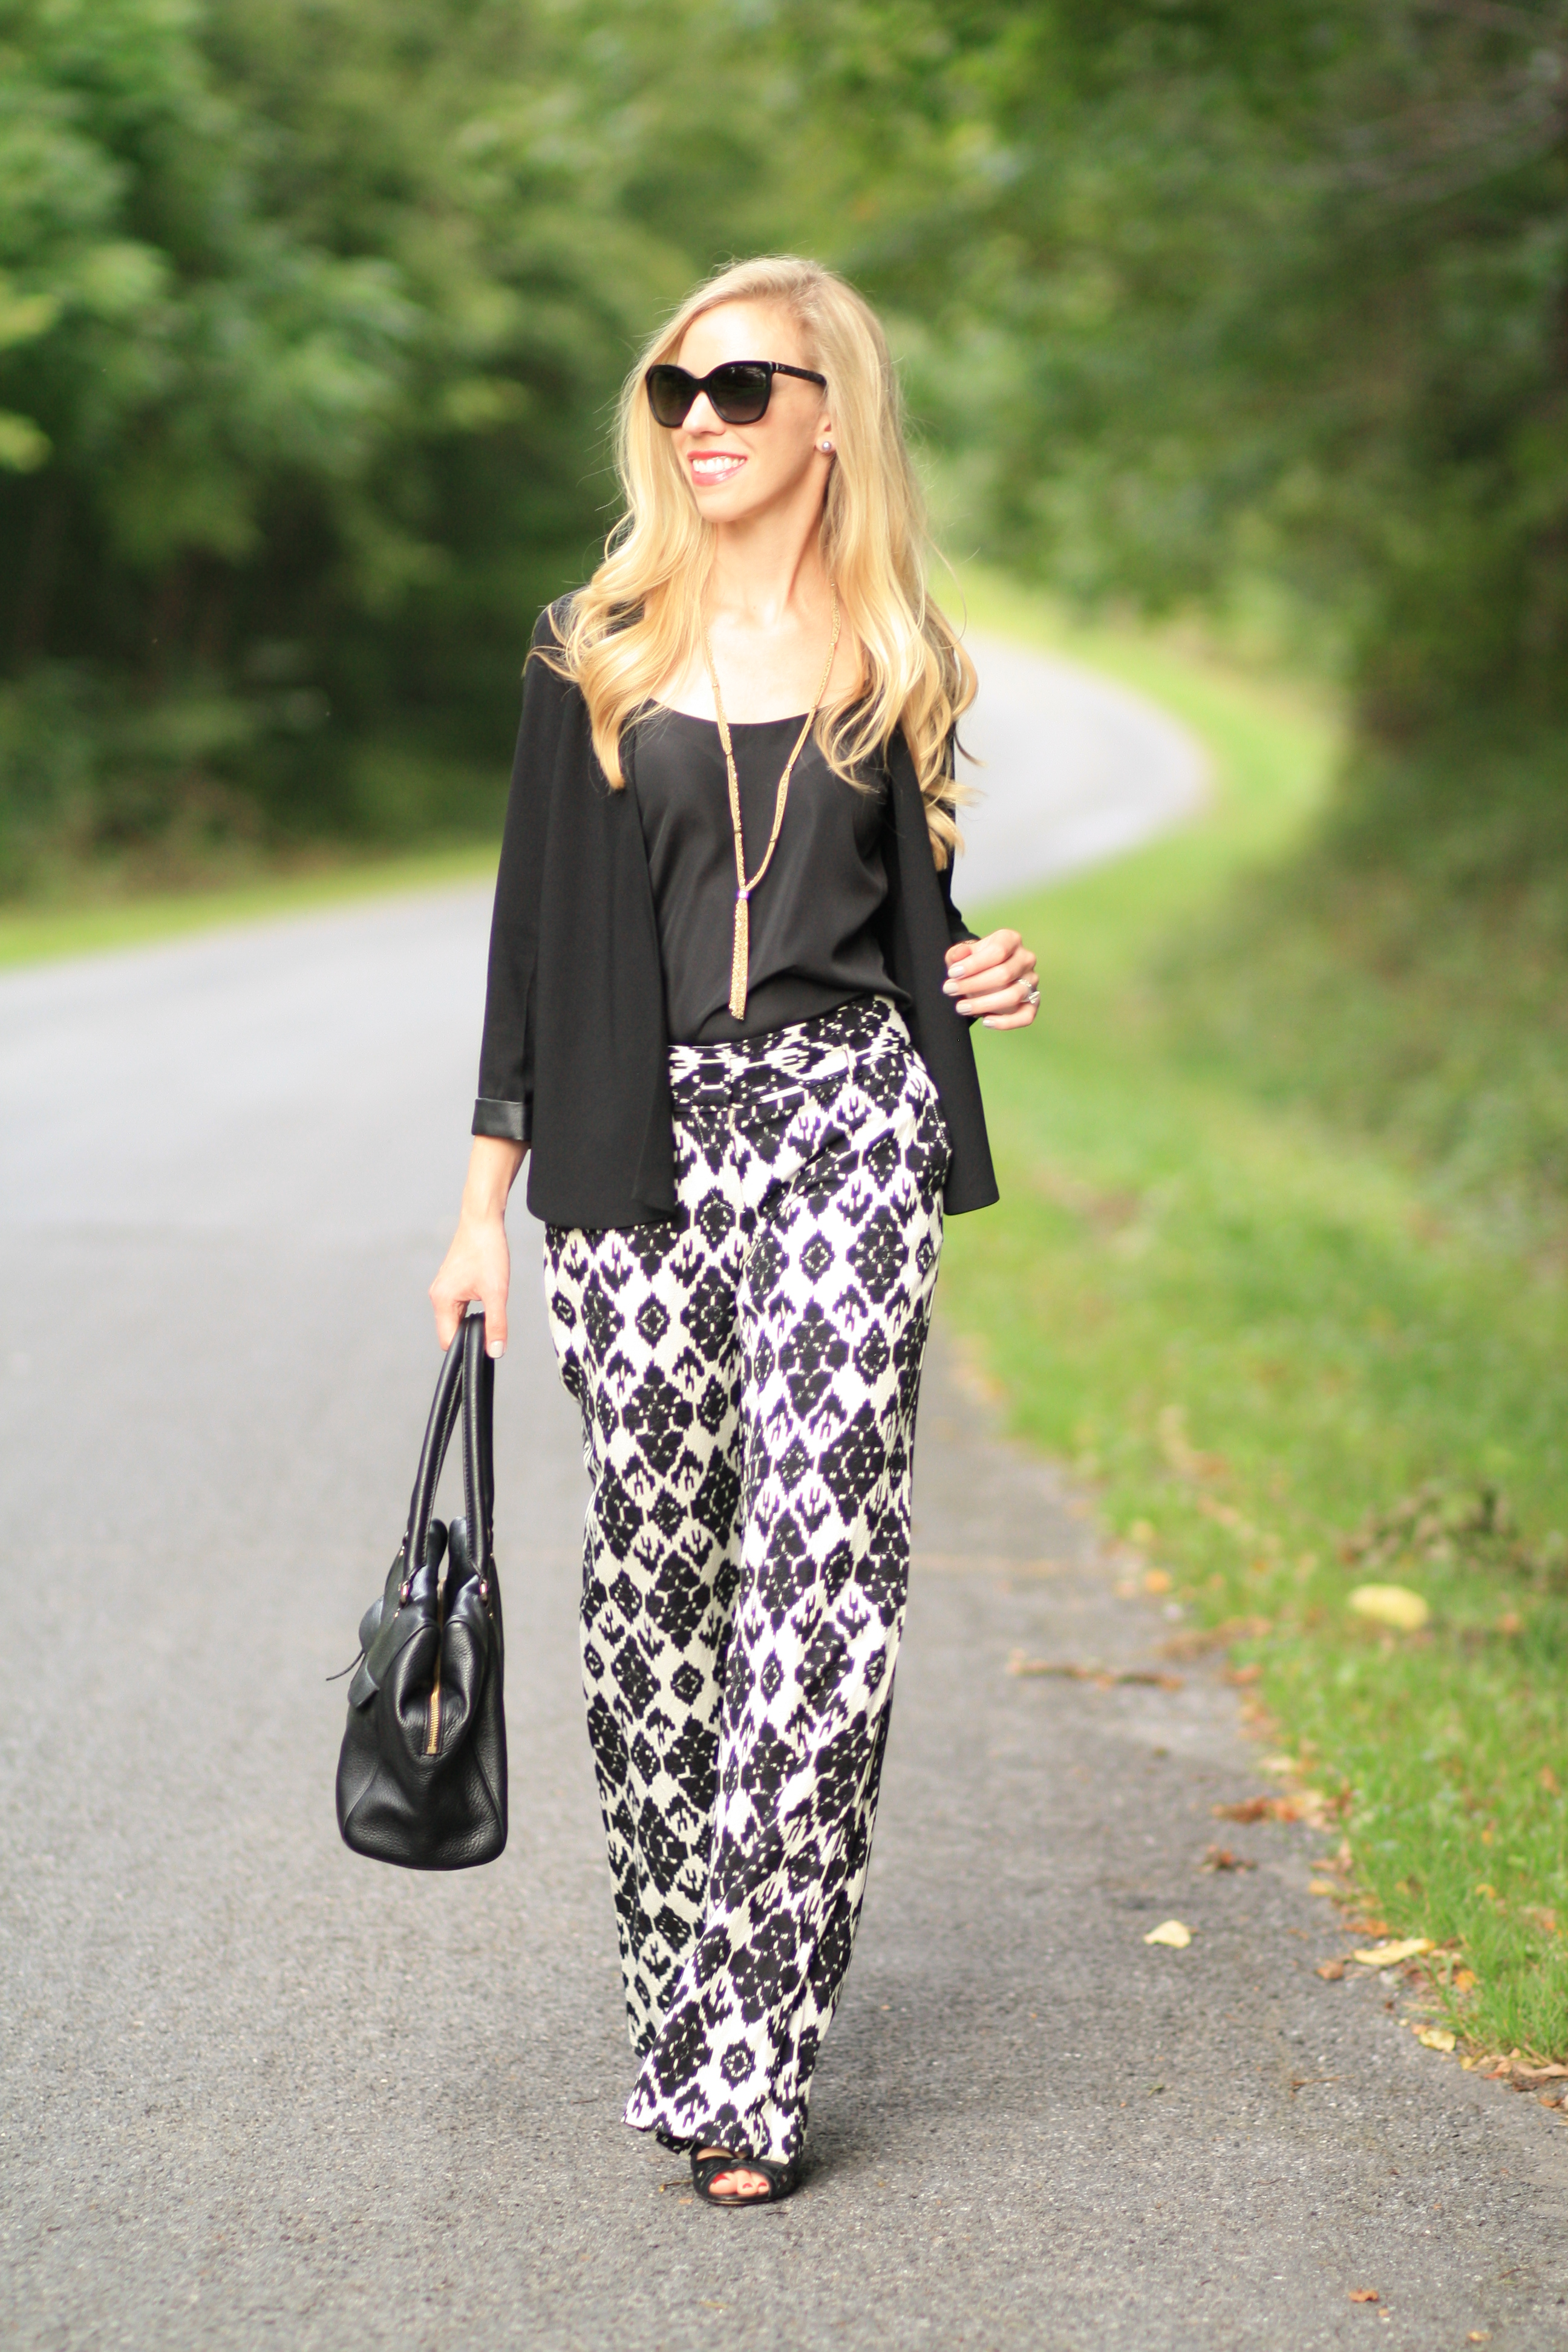 Two Ways To Wear Black And White Ikat Print Separates